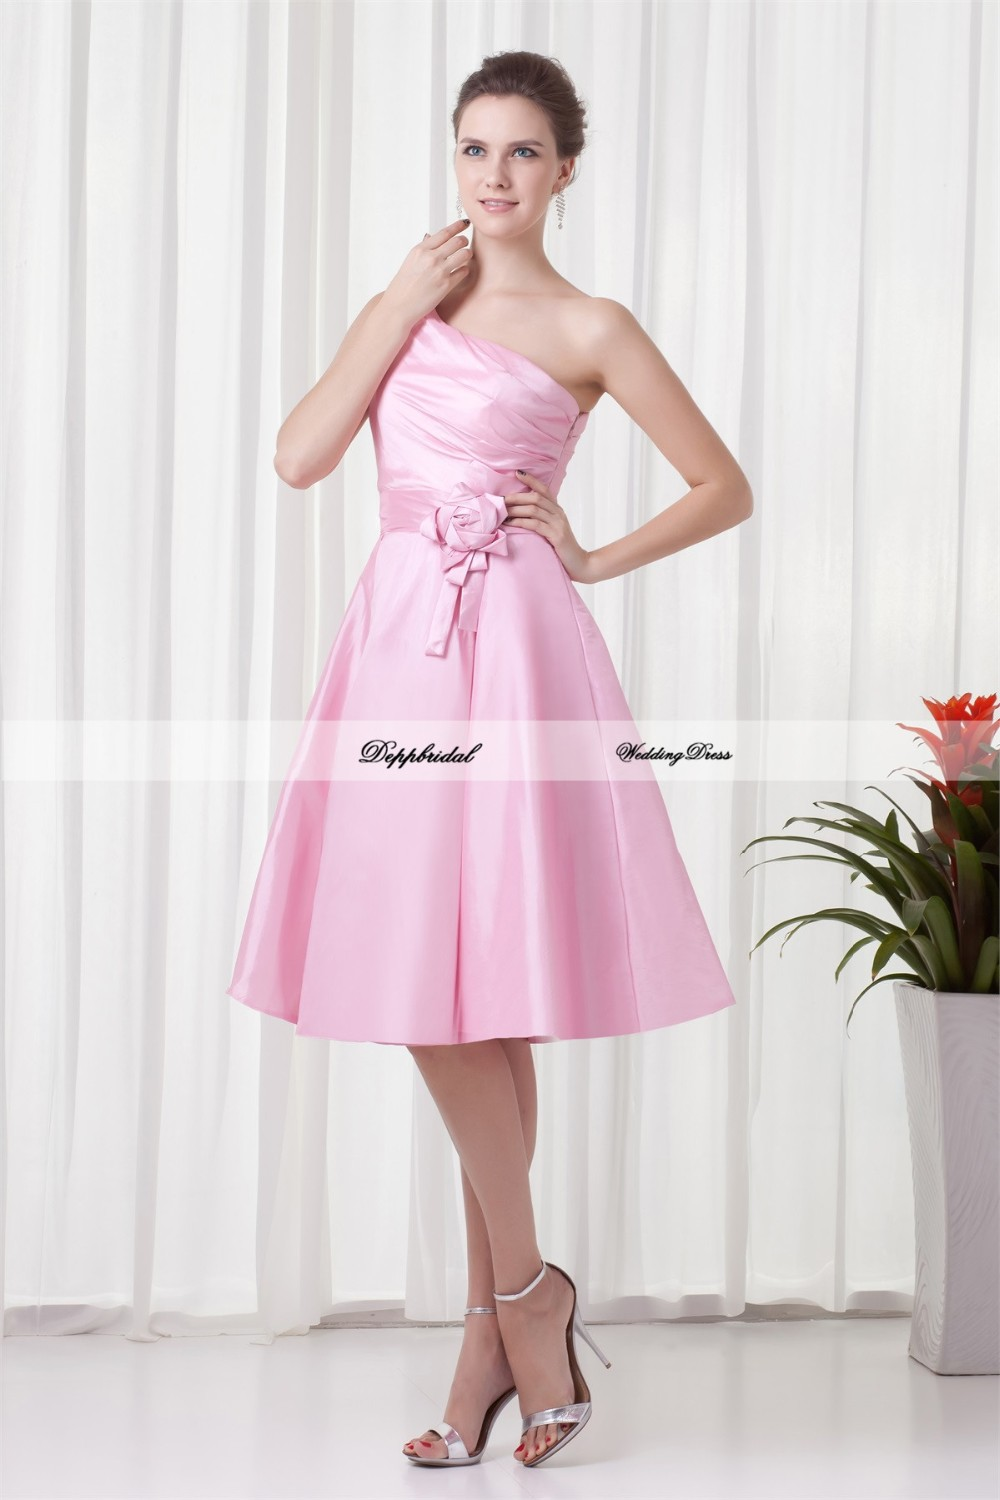 Handmade-Flower-s-A-Line-Tea-Length-One-Shoulder-Bridesmaid-Dresses-22708-80841